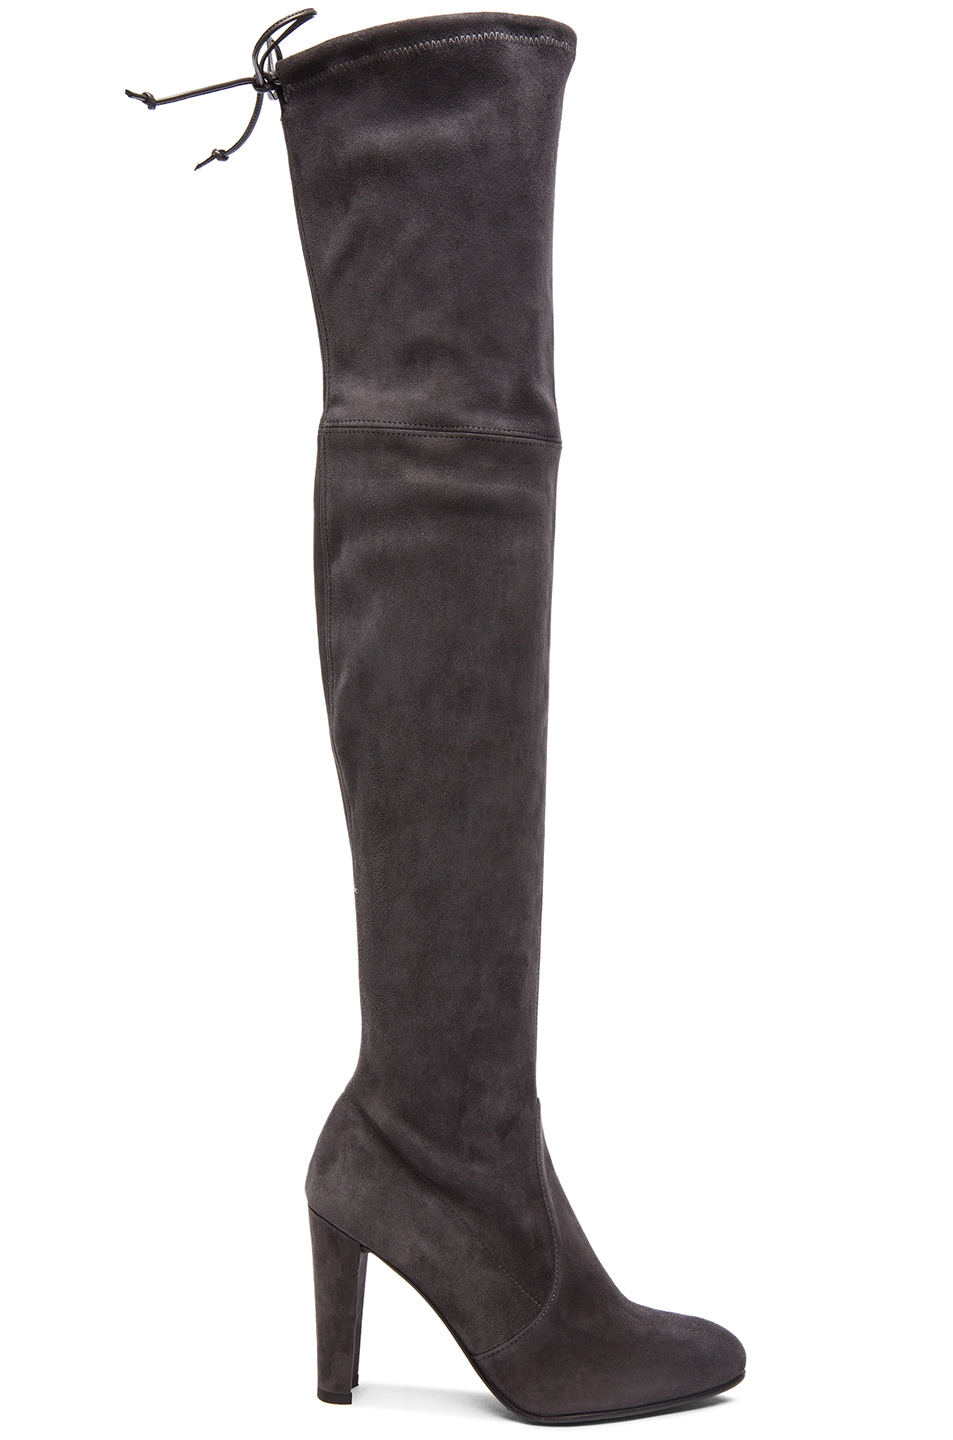 Image 1 of Stuart Weitzman Highland Suede Boots in Grey Suede